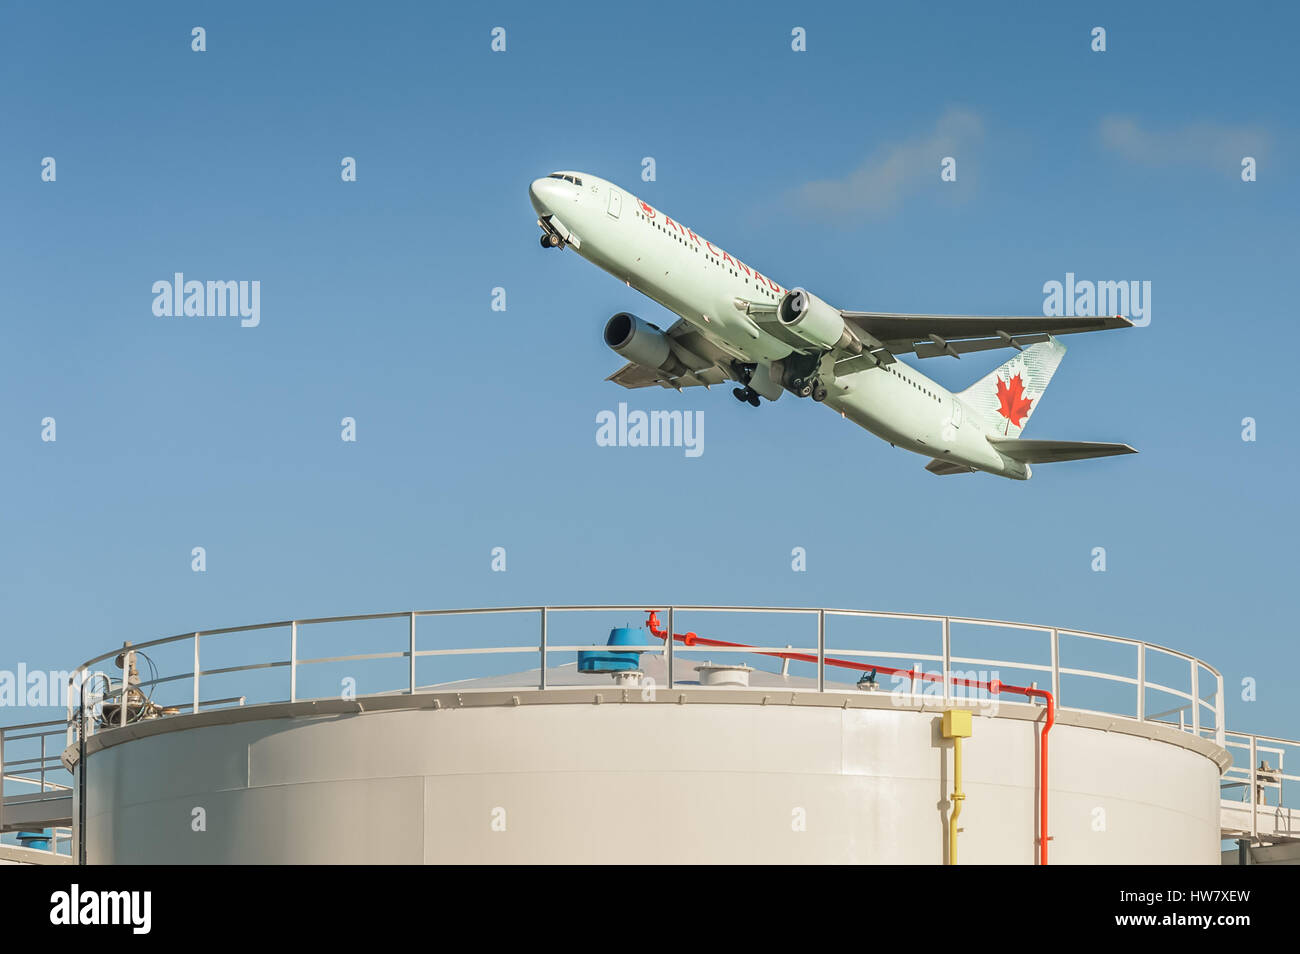 Air Canada Boeing 767 in arctic green livery departing from Heathrow Airport, London, UK Stock Photo